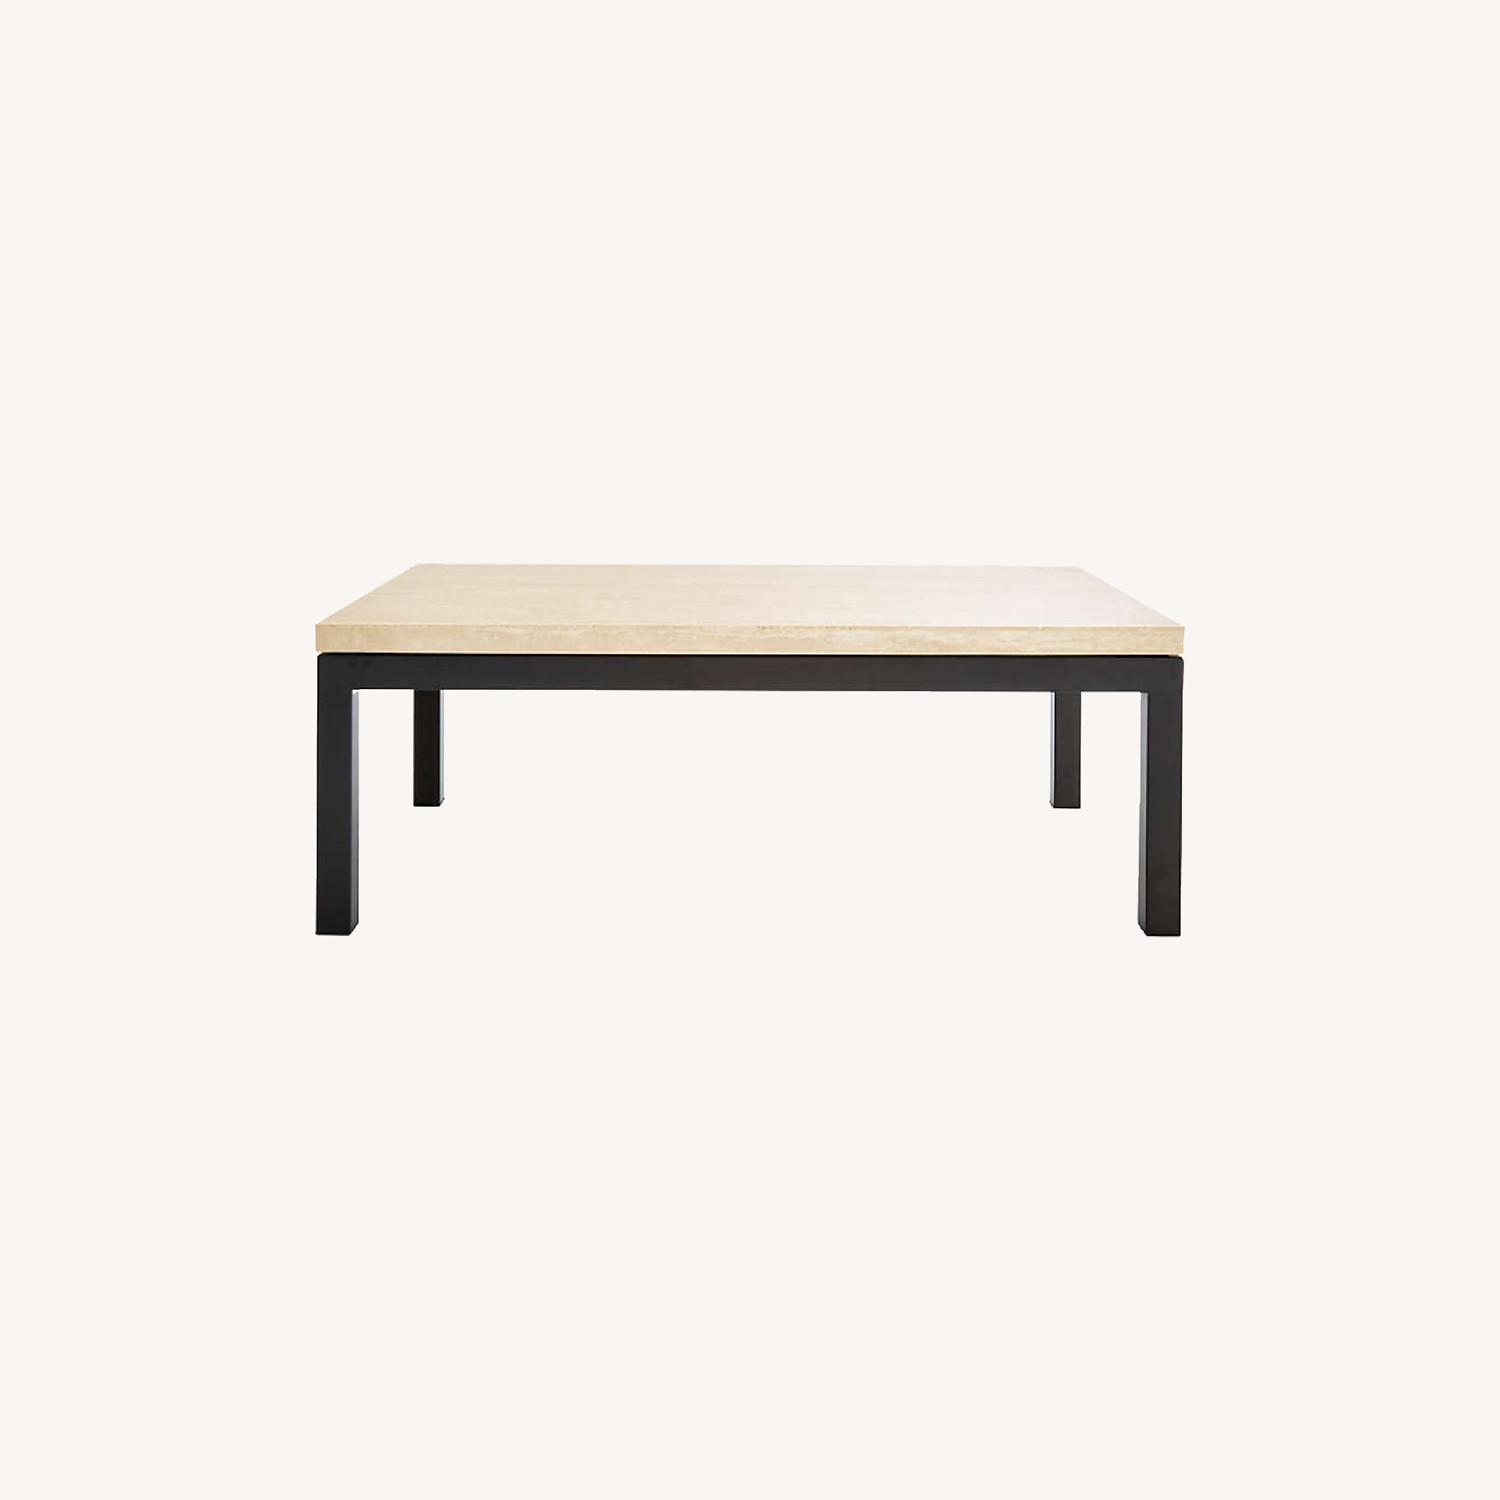 Crate & Barrel Parsons Travertine Coffee Table - image-0